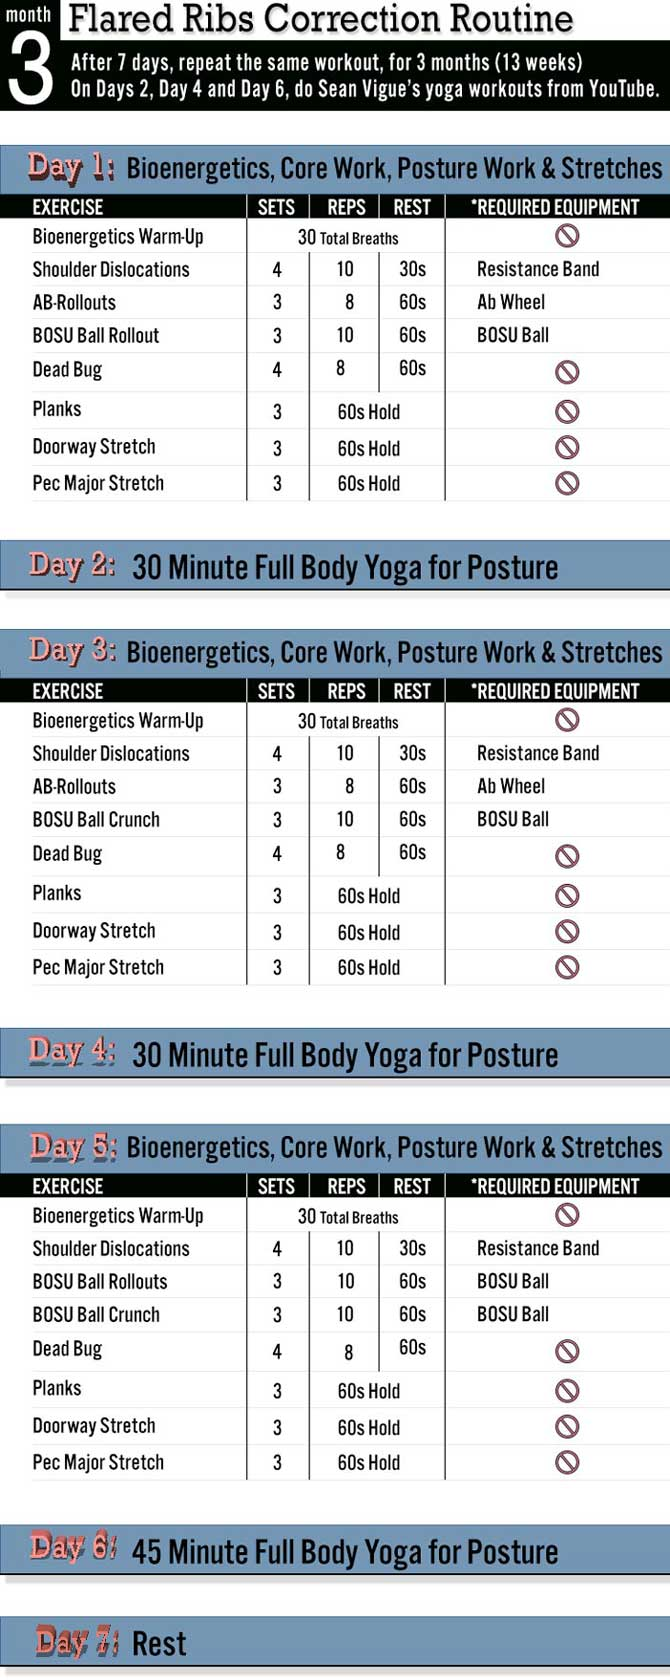 3 month workout plan to correct rib flare